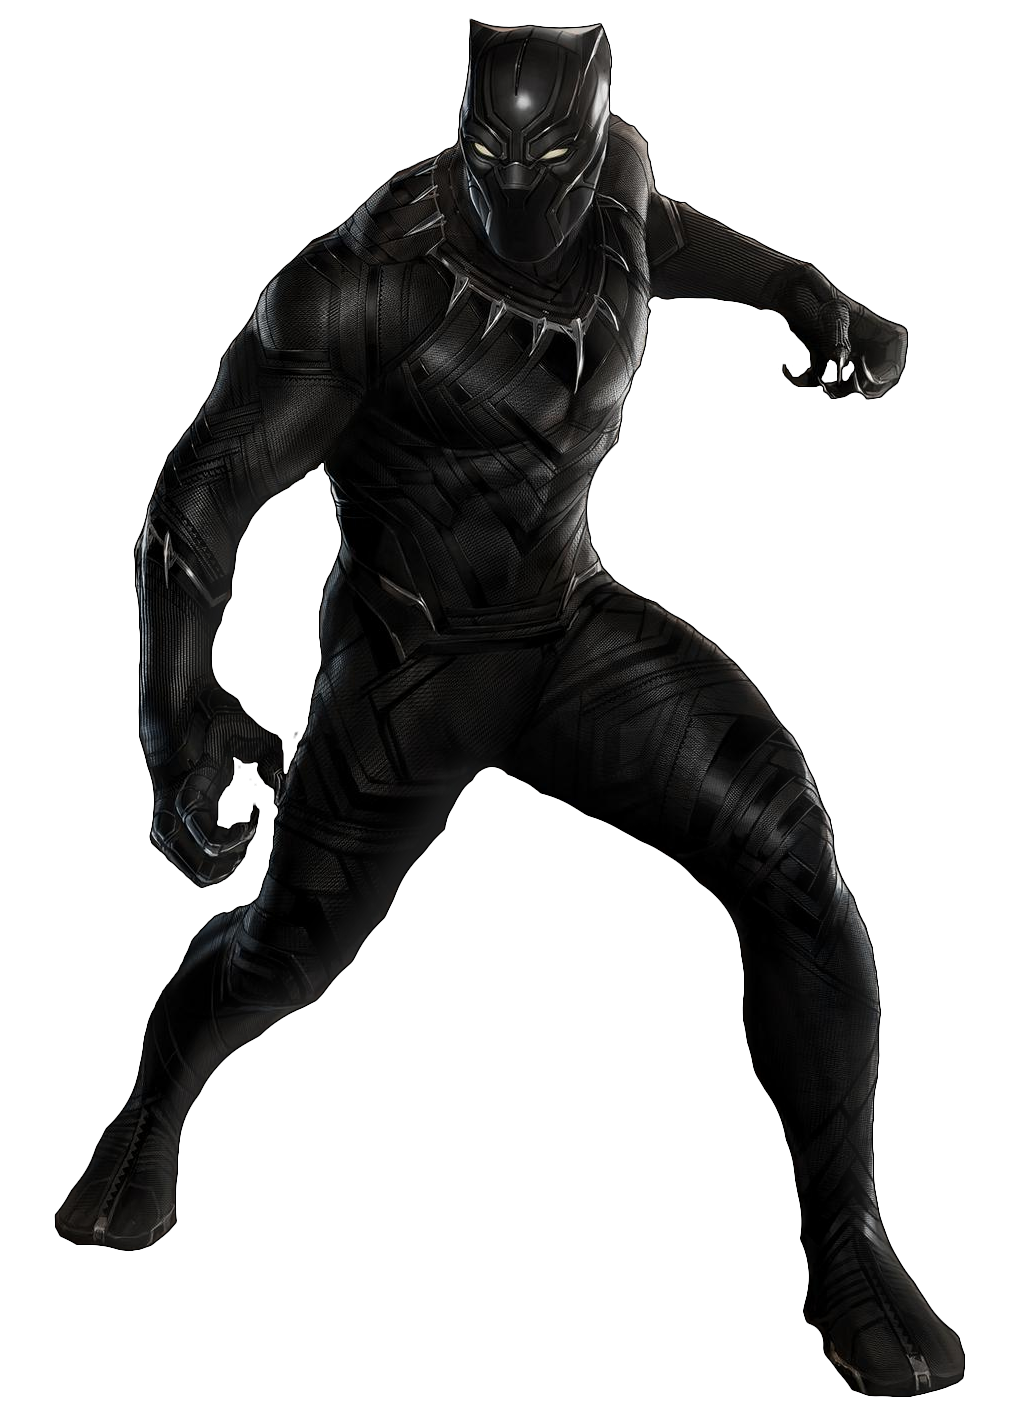 black panther movie logo png